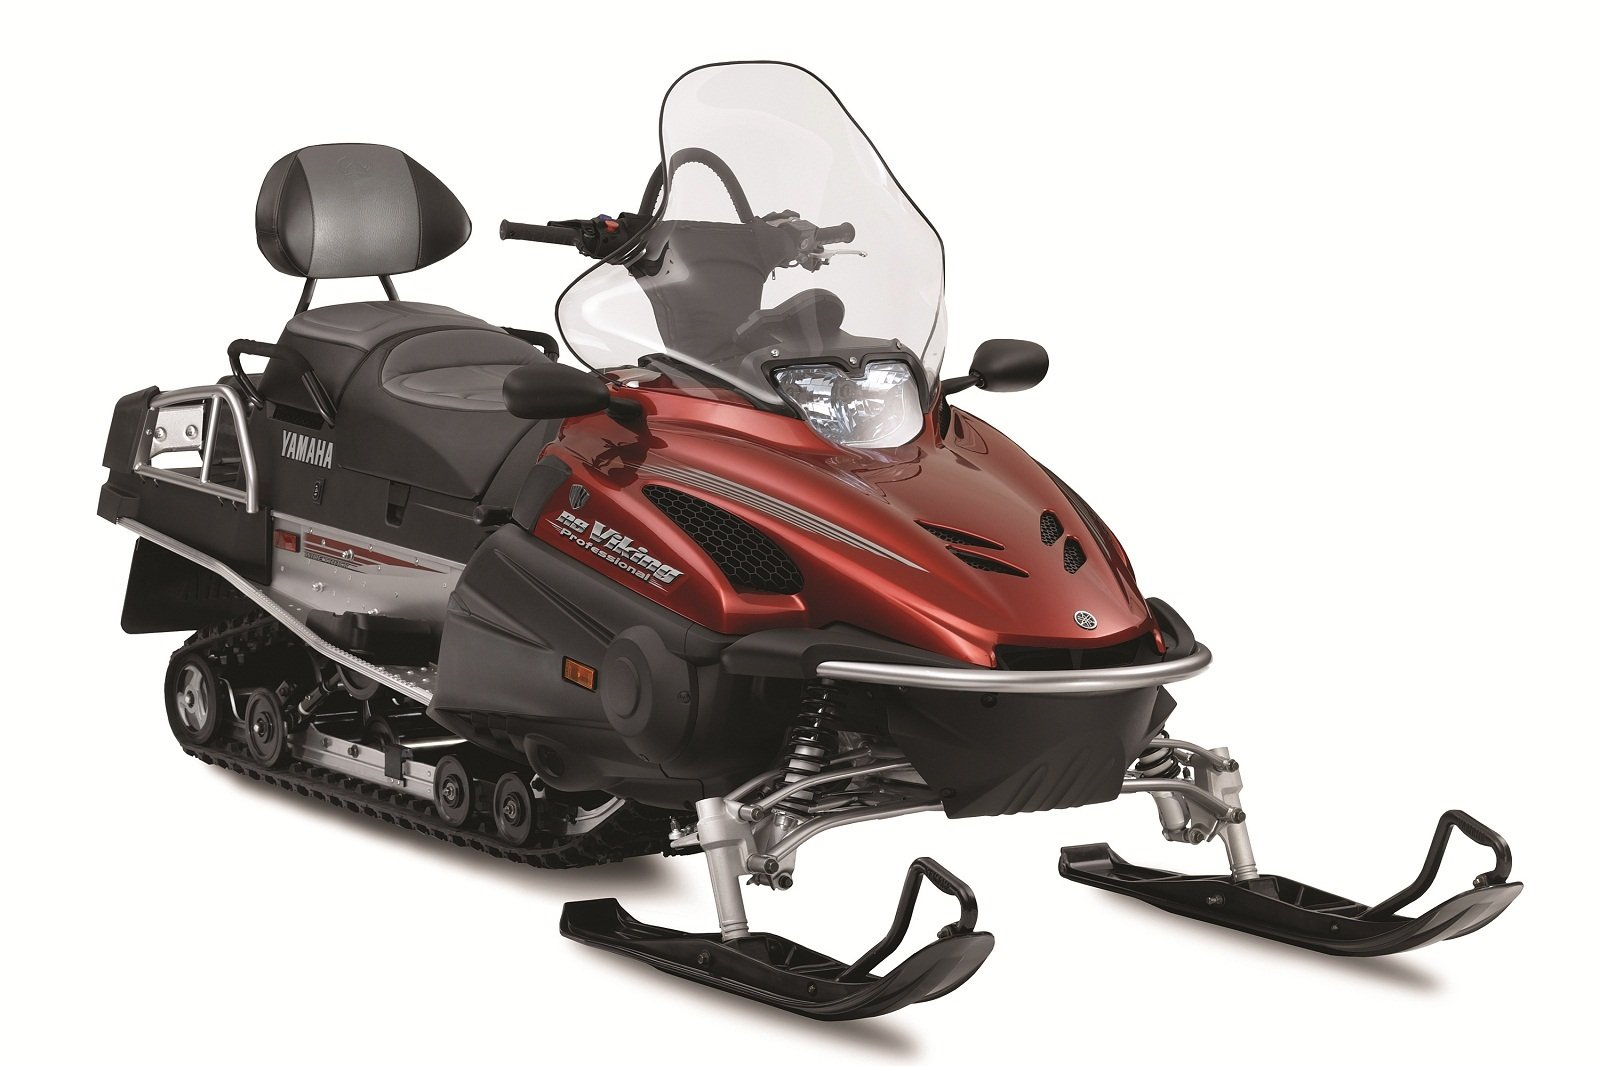 2012 Yamaha Rs Viking Professional Review Top Speed